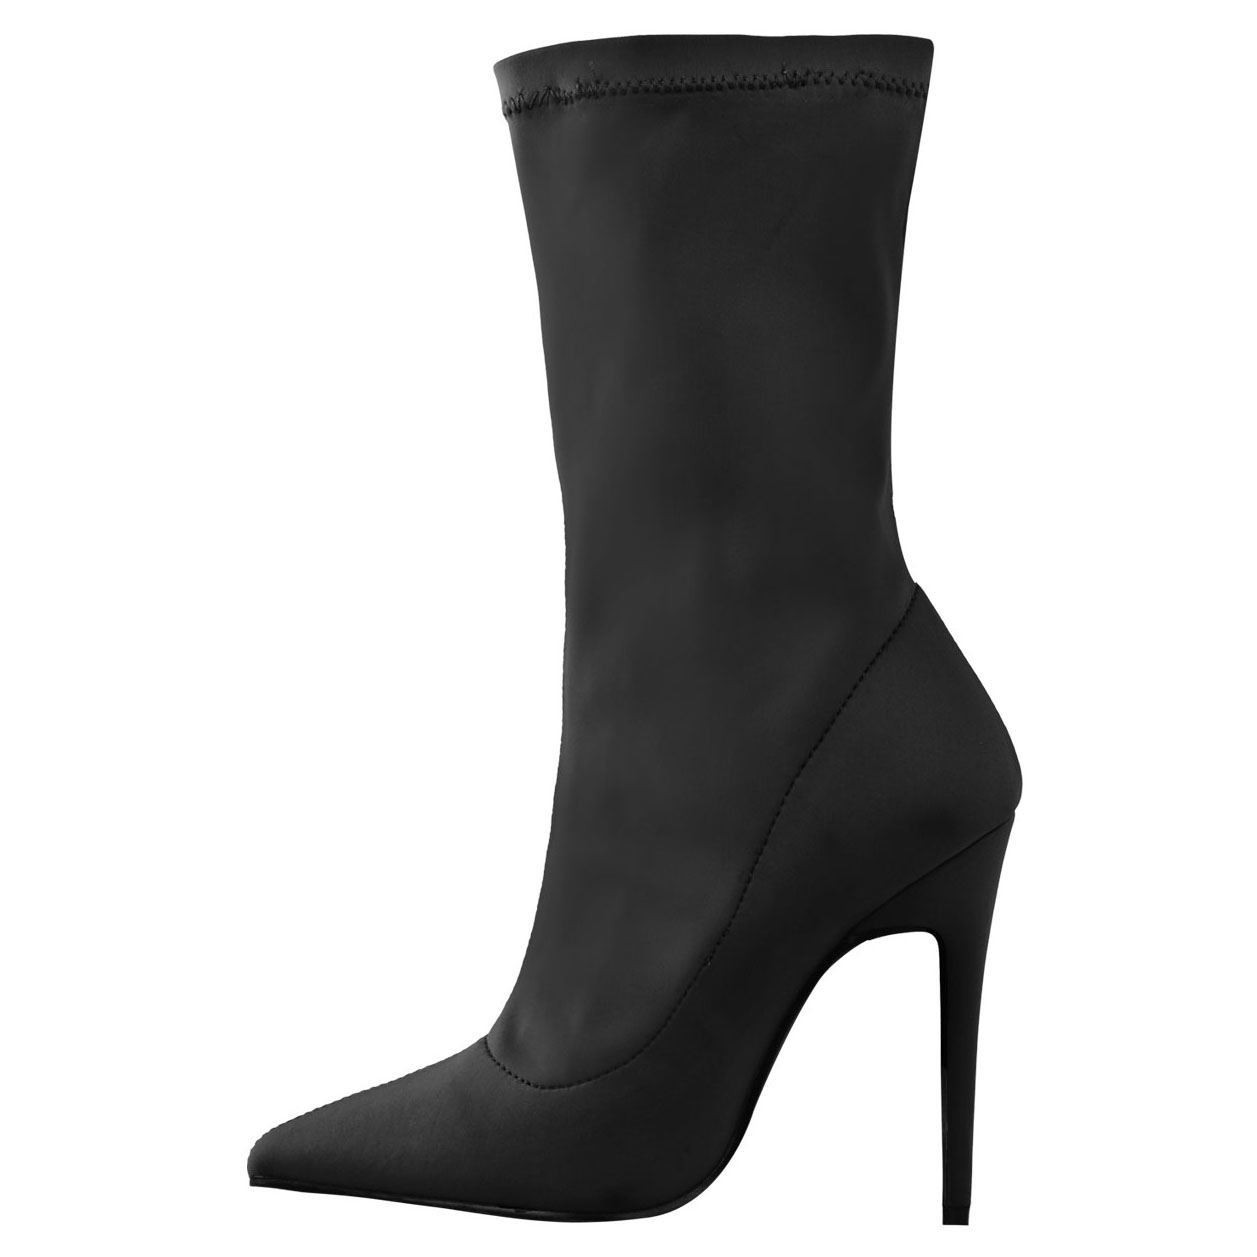 NEW-WOMENS-LADIES-POINTY-TOE-HIGH-STILETTO-HEEL-STRETCHY-LYCRA-ANKLE-BOOTS-SHOES